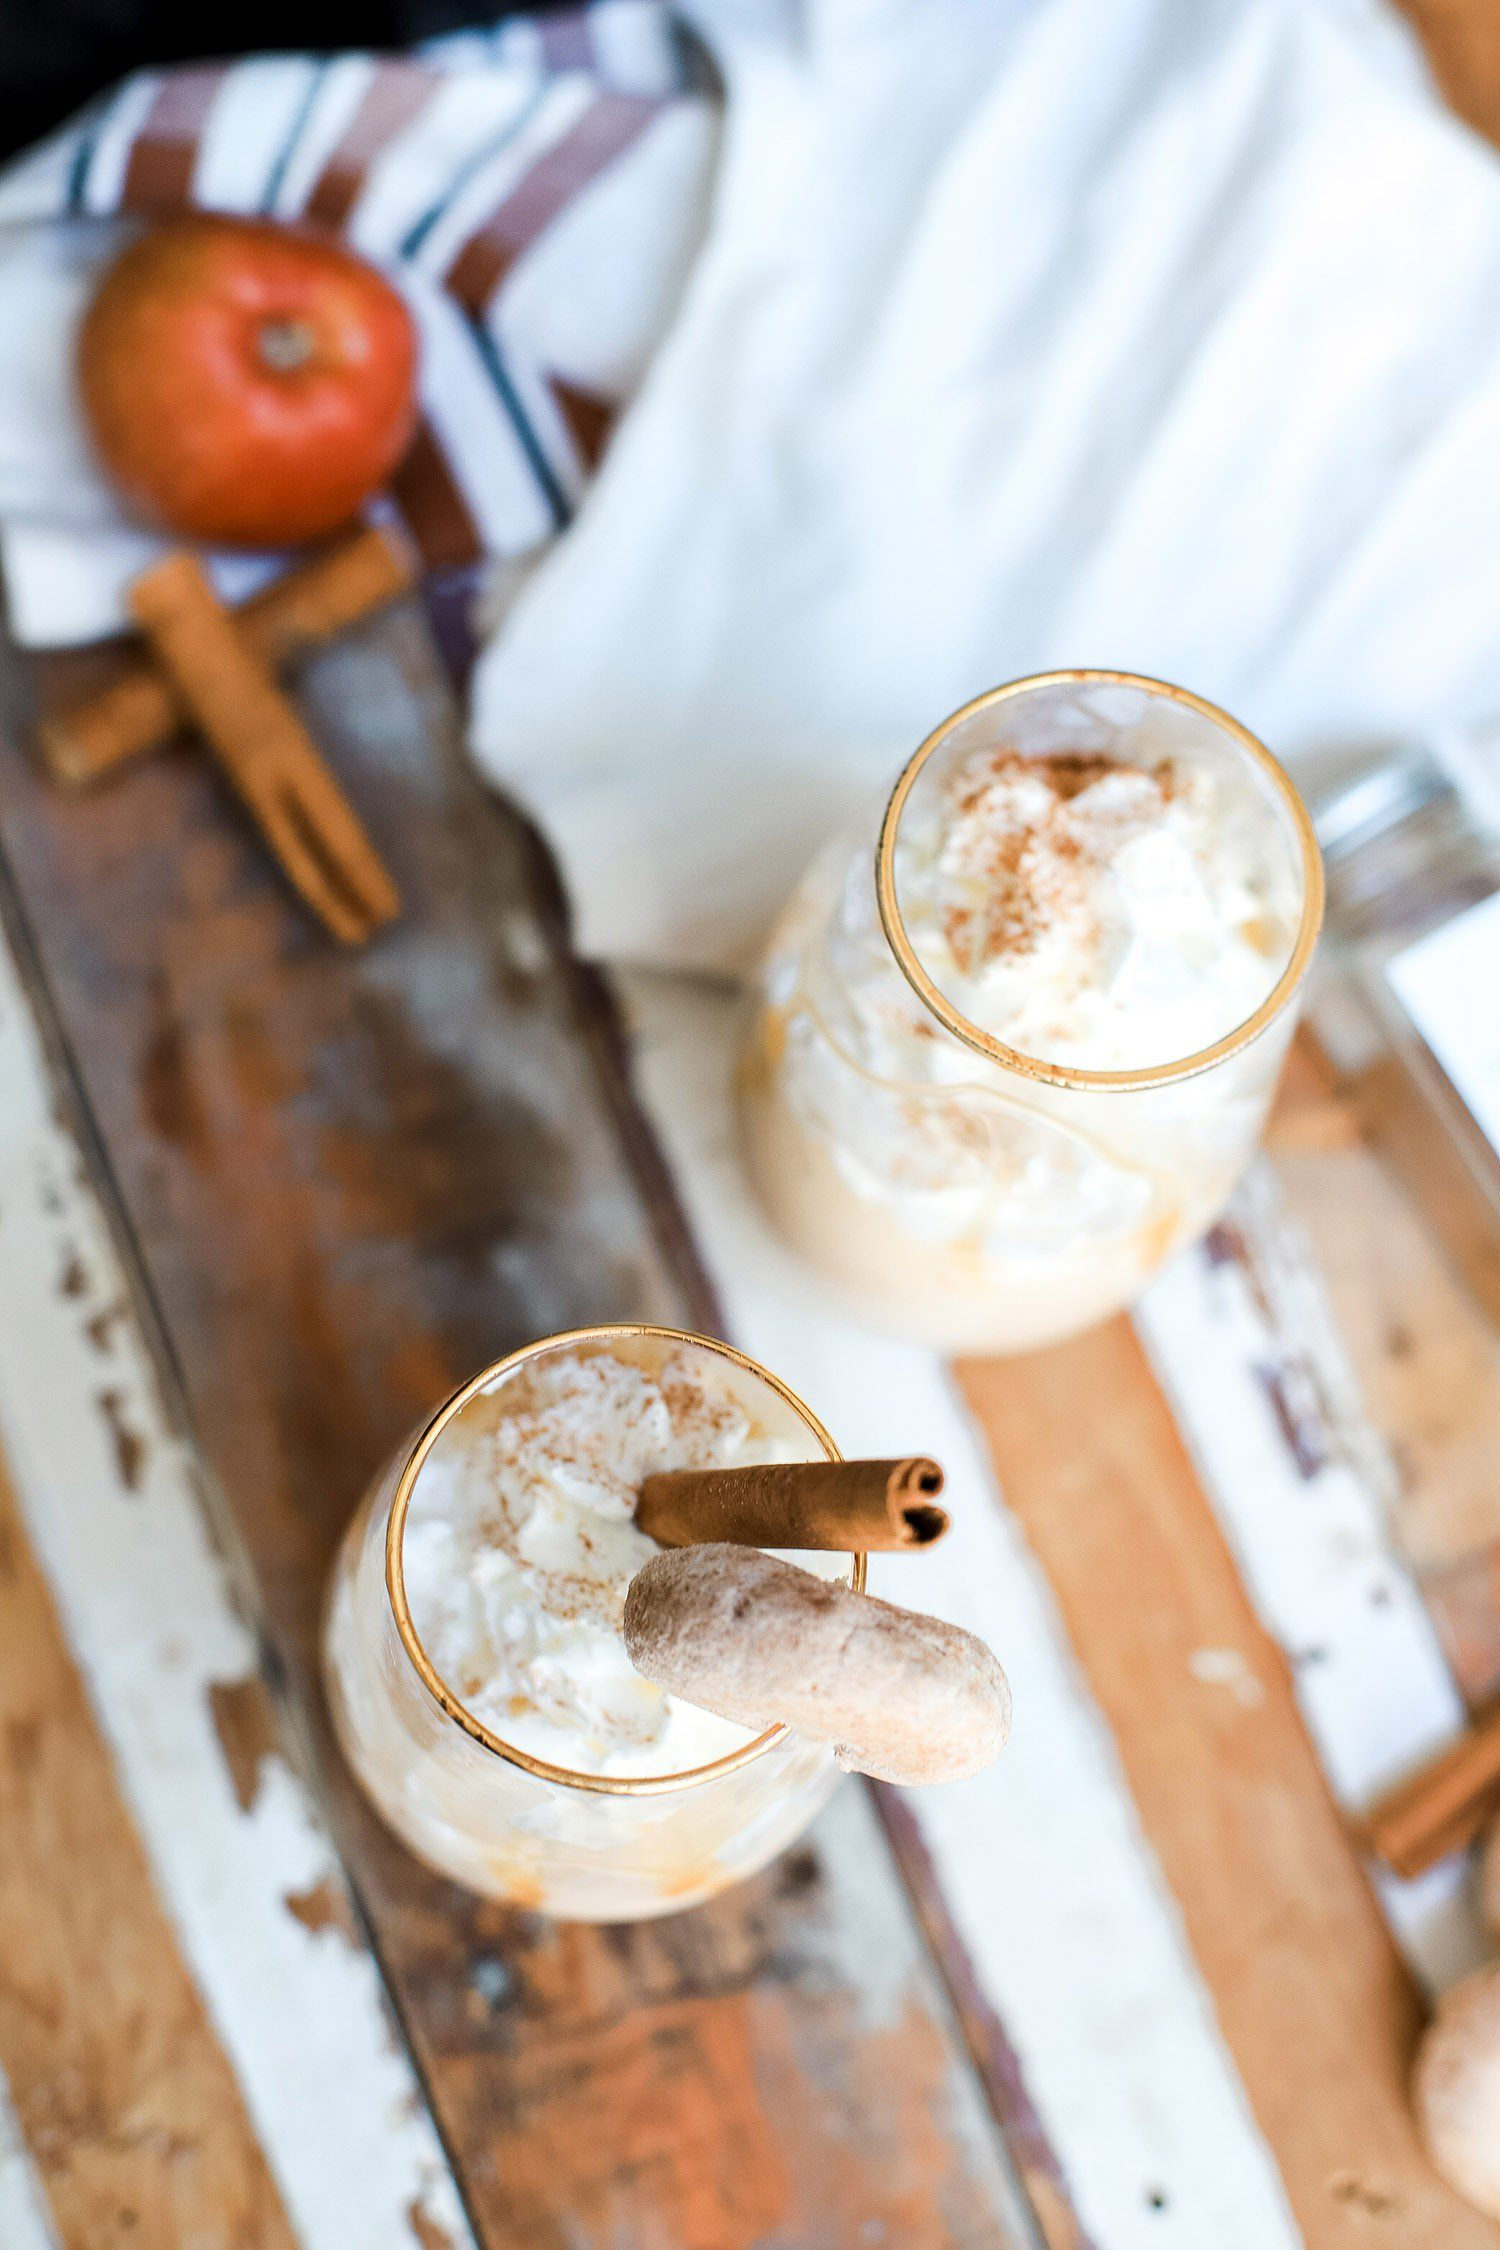 A Healthy Apple Cider Milkshake Recipe Your Family Will Love!